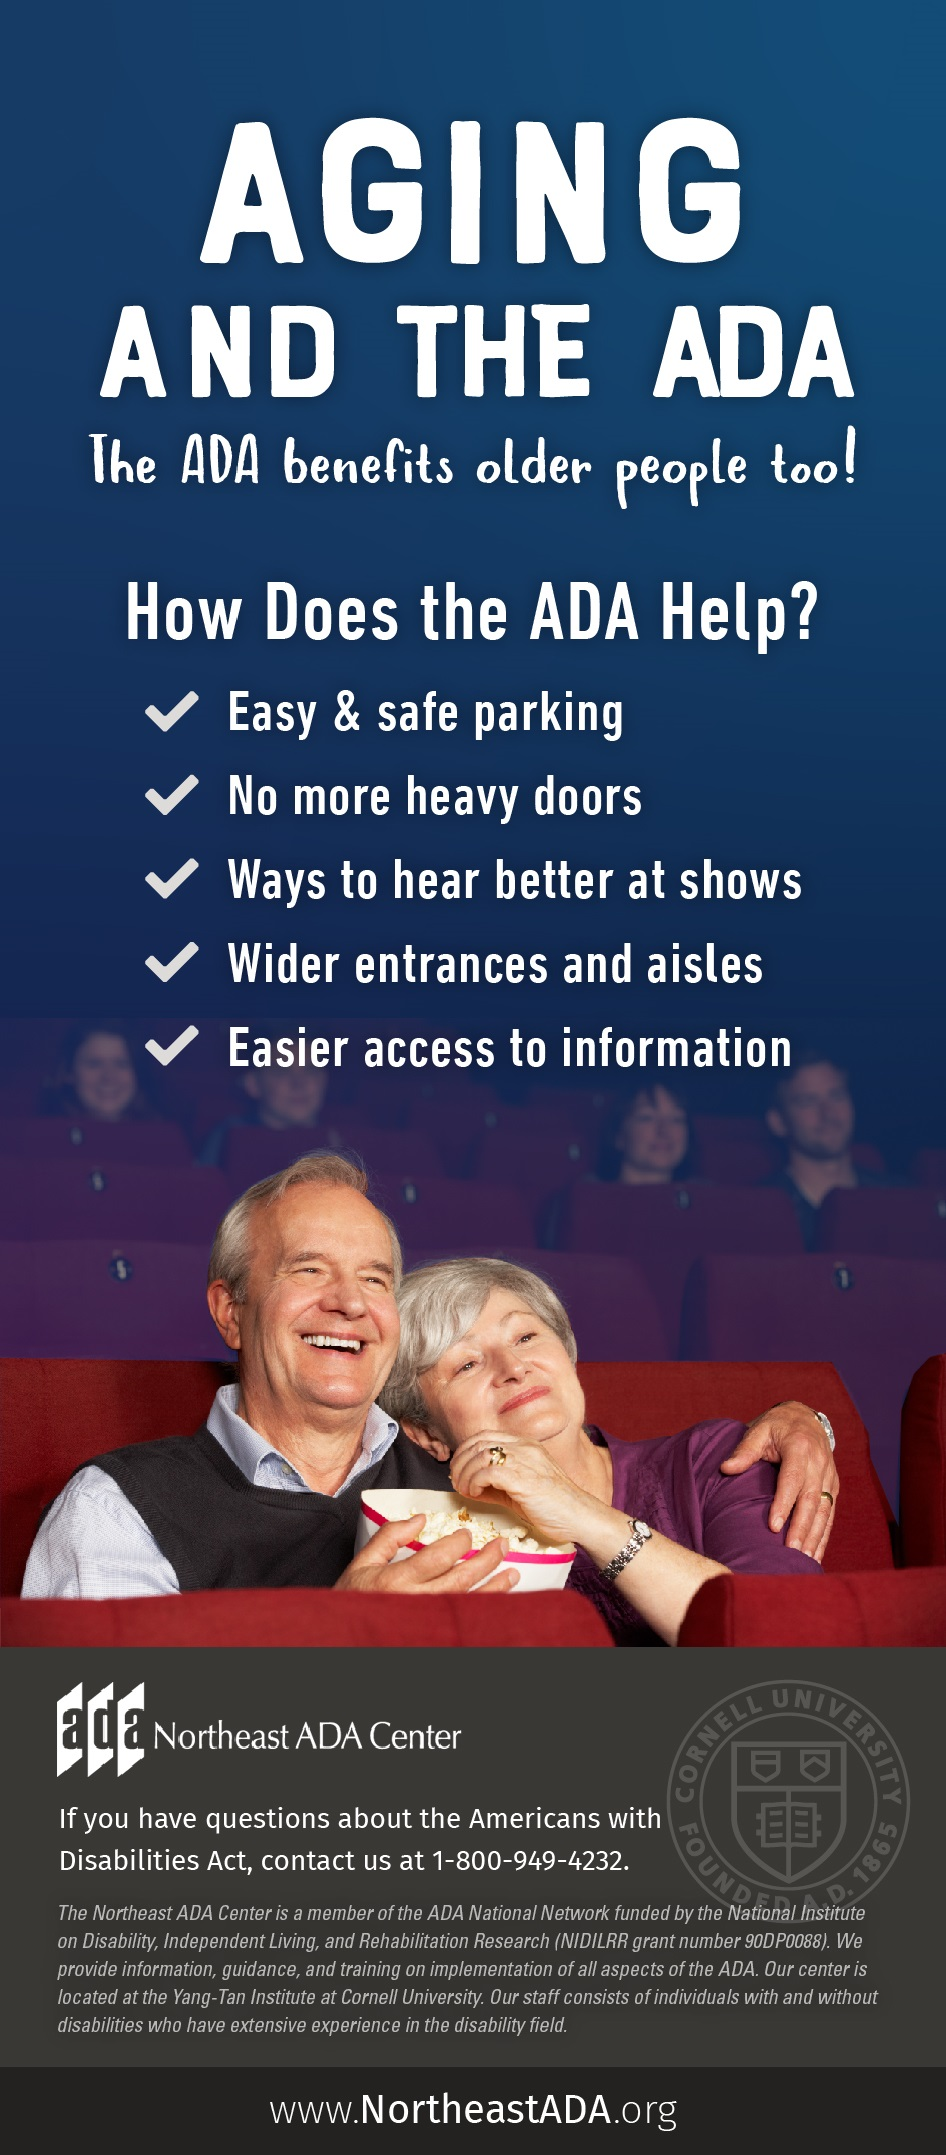 Infographic titled 'Aging and the ADA' featuring a senior couple in a movie theater. The ADA benefits older people too! How does the ADA Help? Easy and safe parking. No more heavy doors. Ways to hear better at shows. Wide entrances and aisles. Easier access to information.  If you have questions about the Americans with Disabilities Act, contact the Northeast ADA Center at 1-800-949-4232